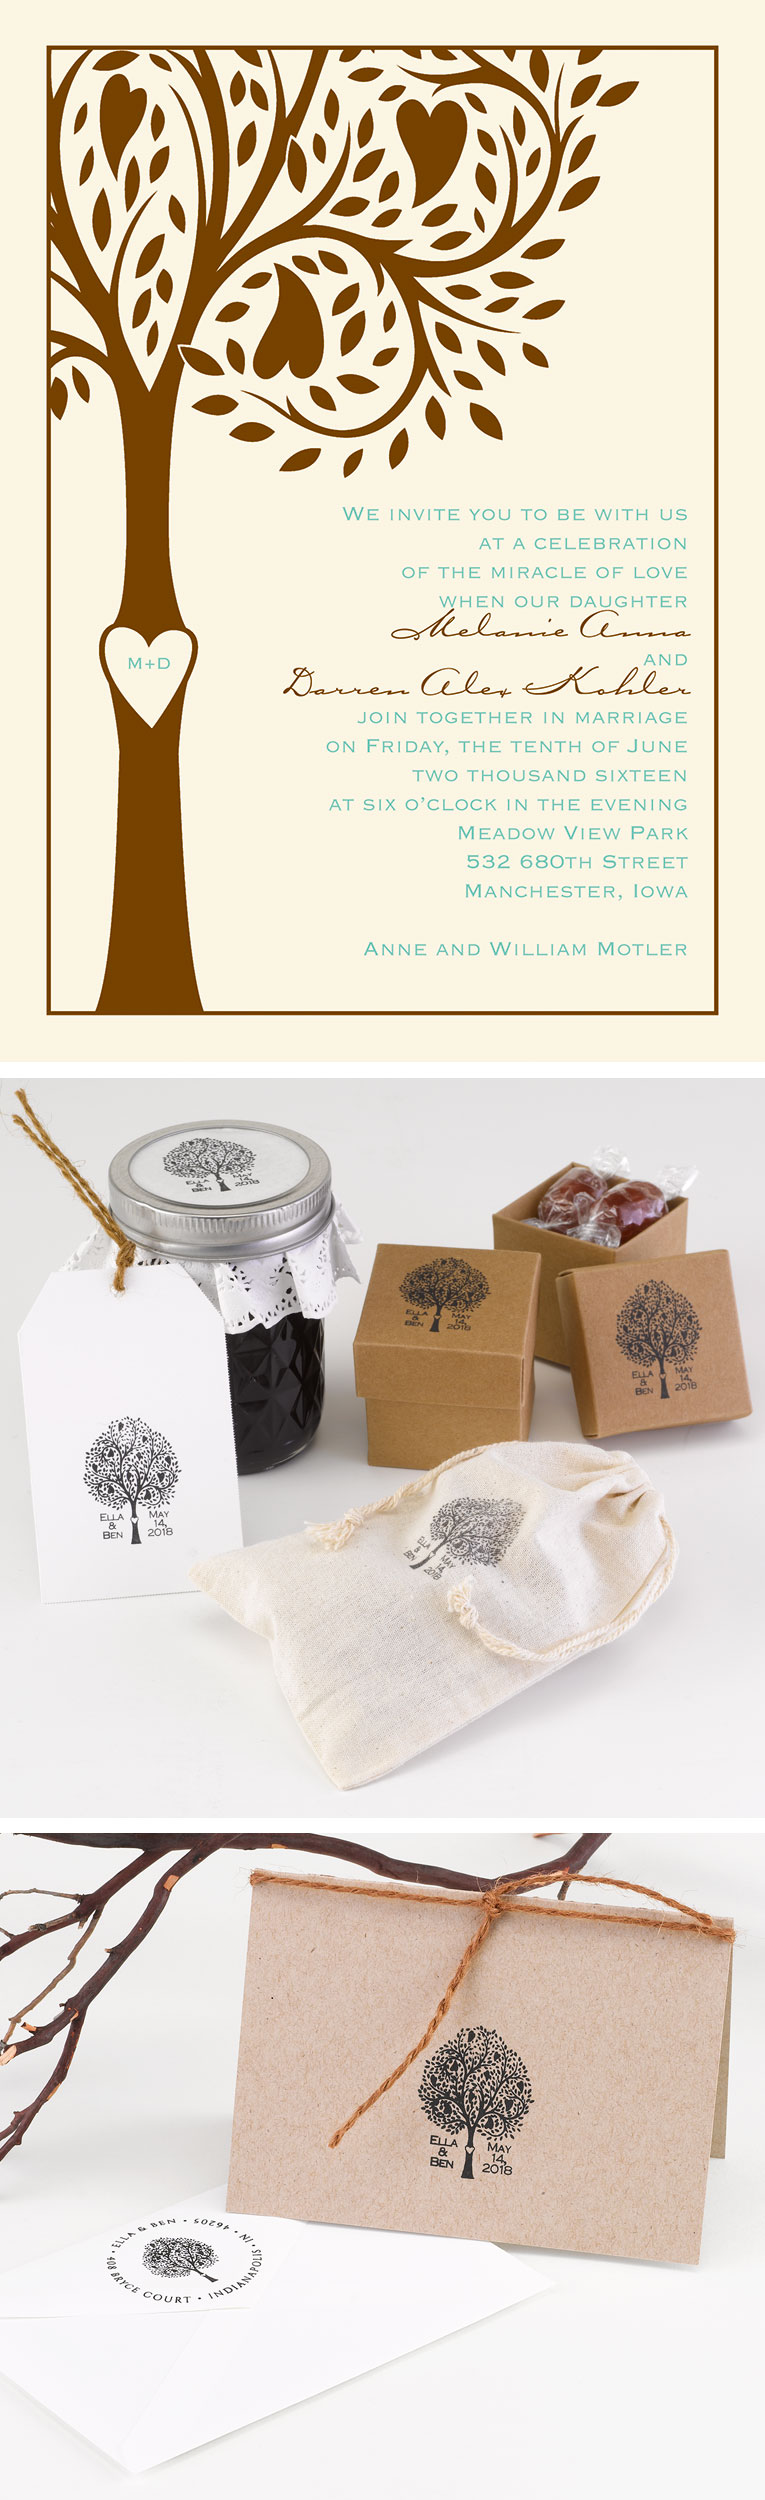 Custom Stamps to Match Your Wedding Invitations | Tree themed ...